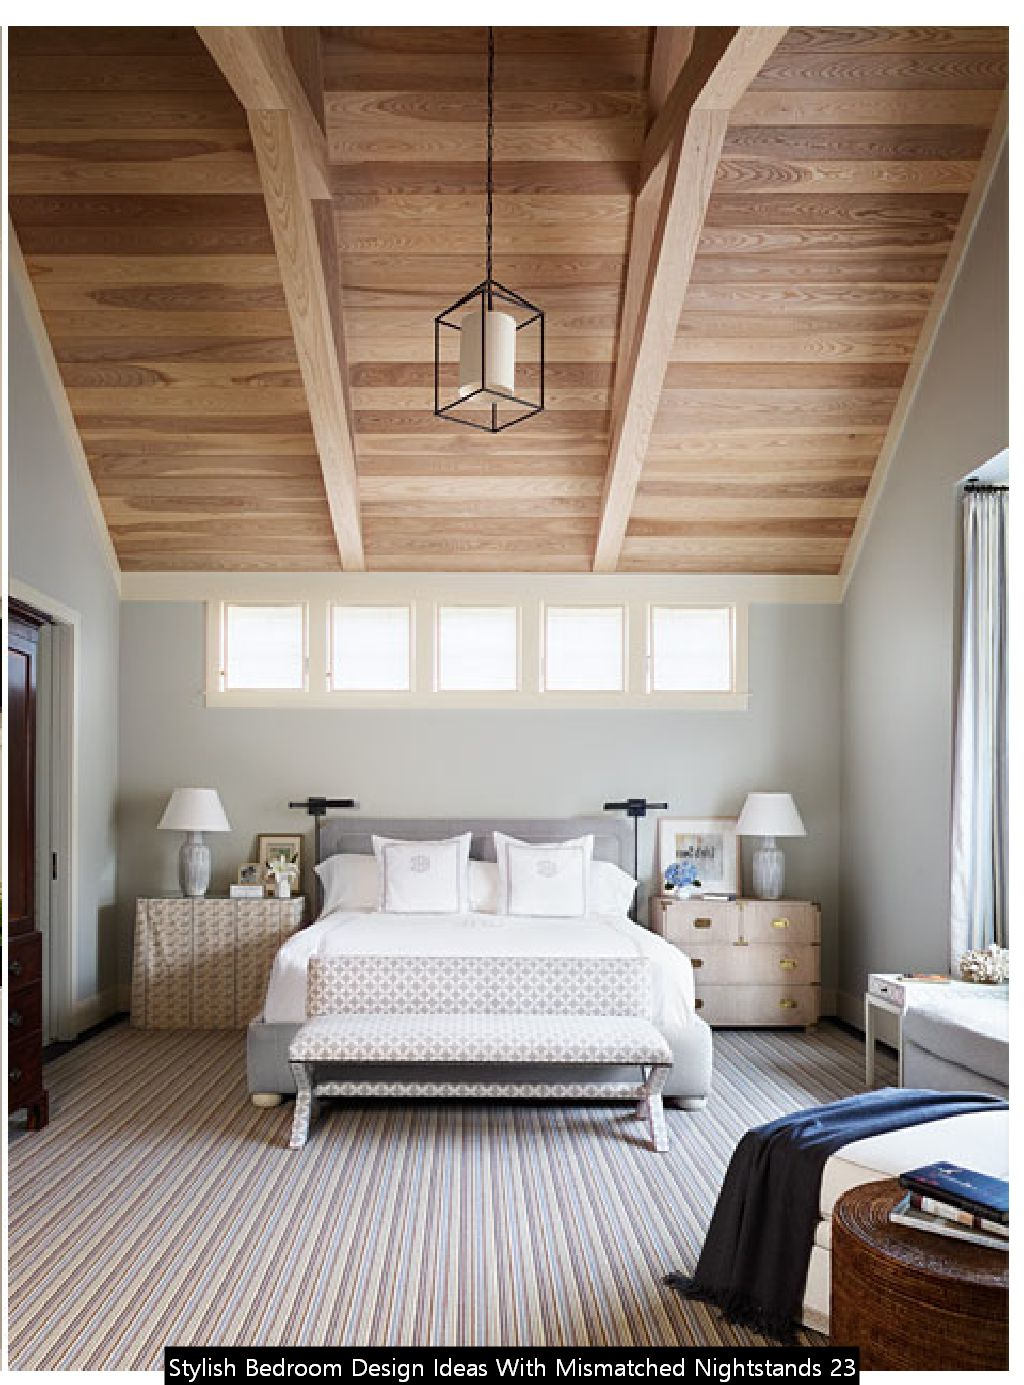 Stylish Bedroom Design Ideas With Mismatched Nightstands 23